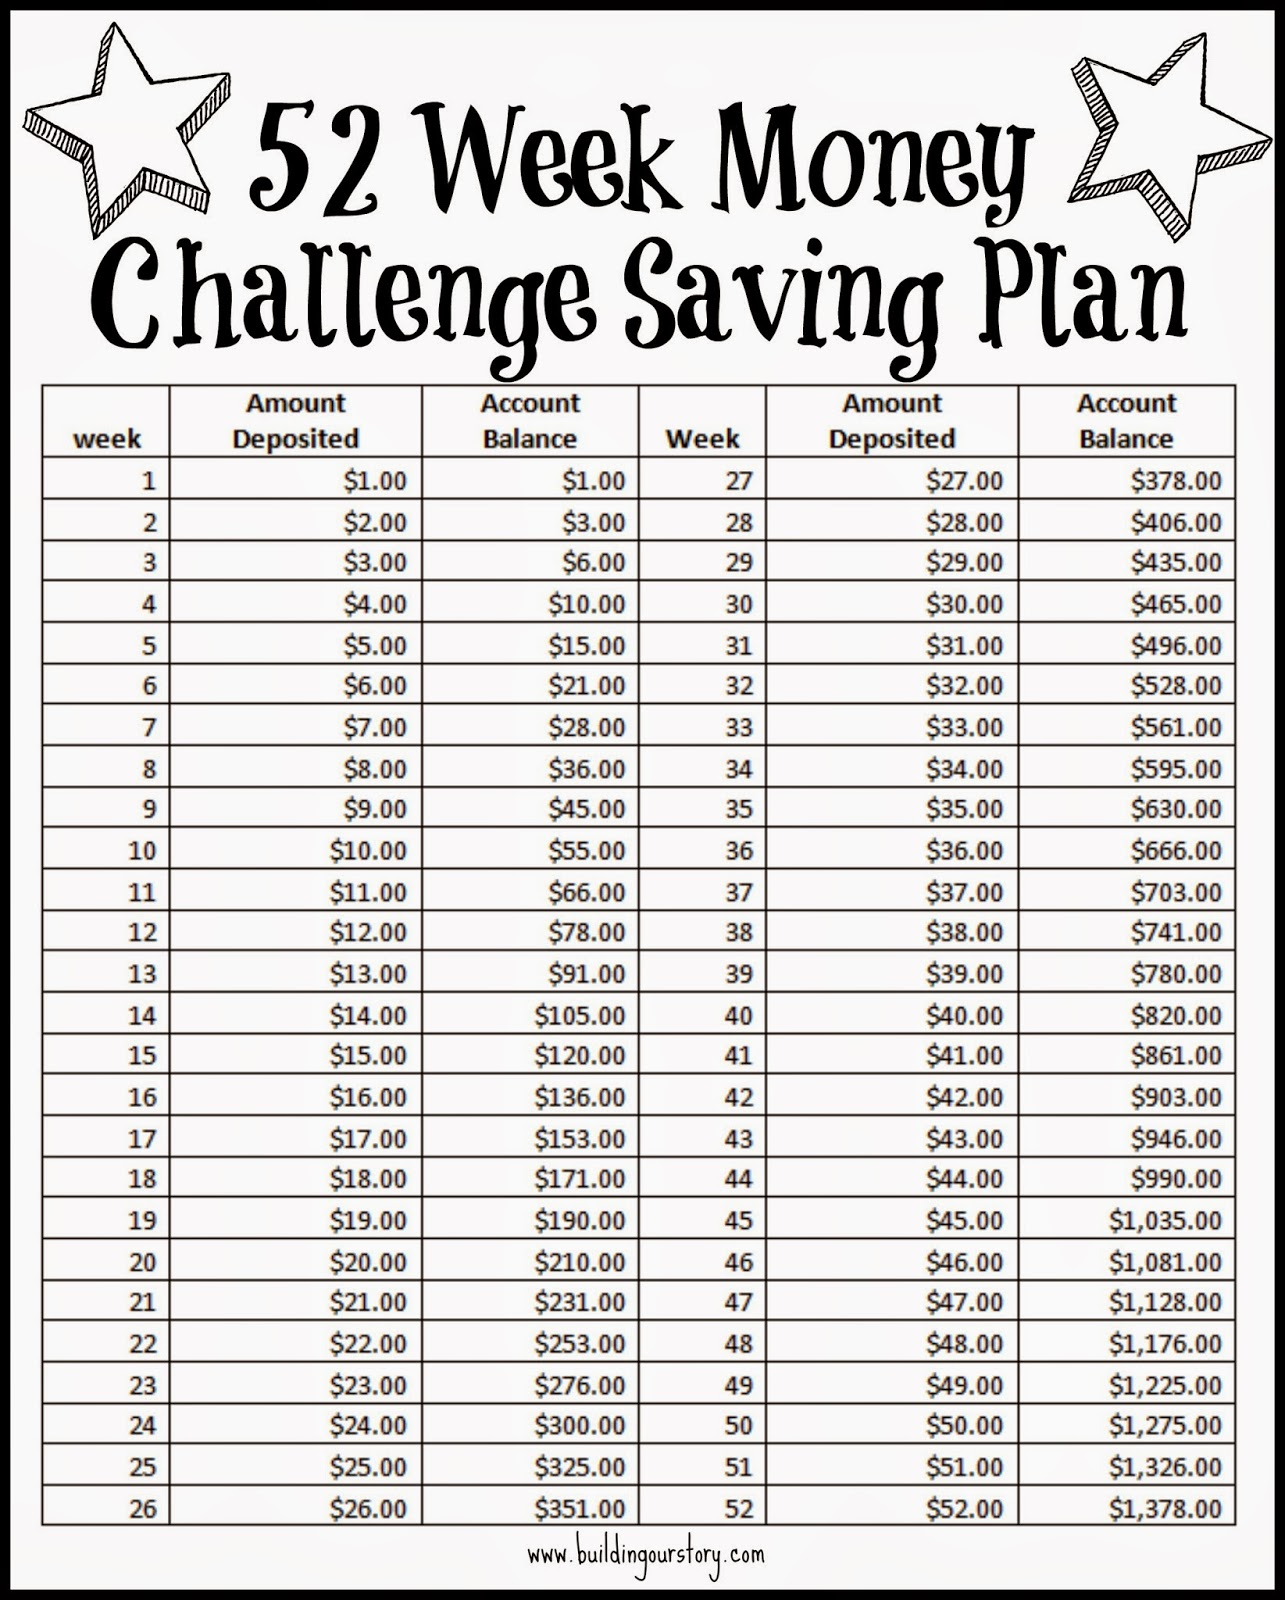 52 Week Money Challenge Saving Plan